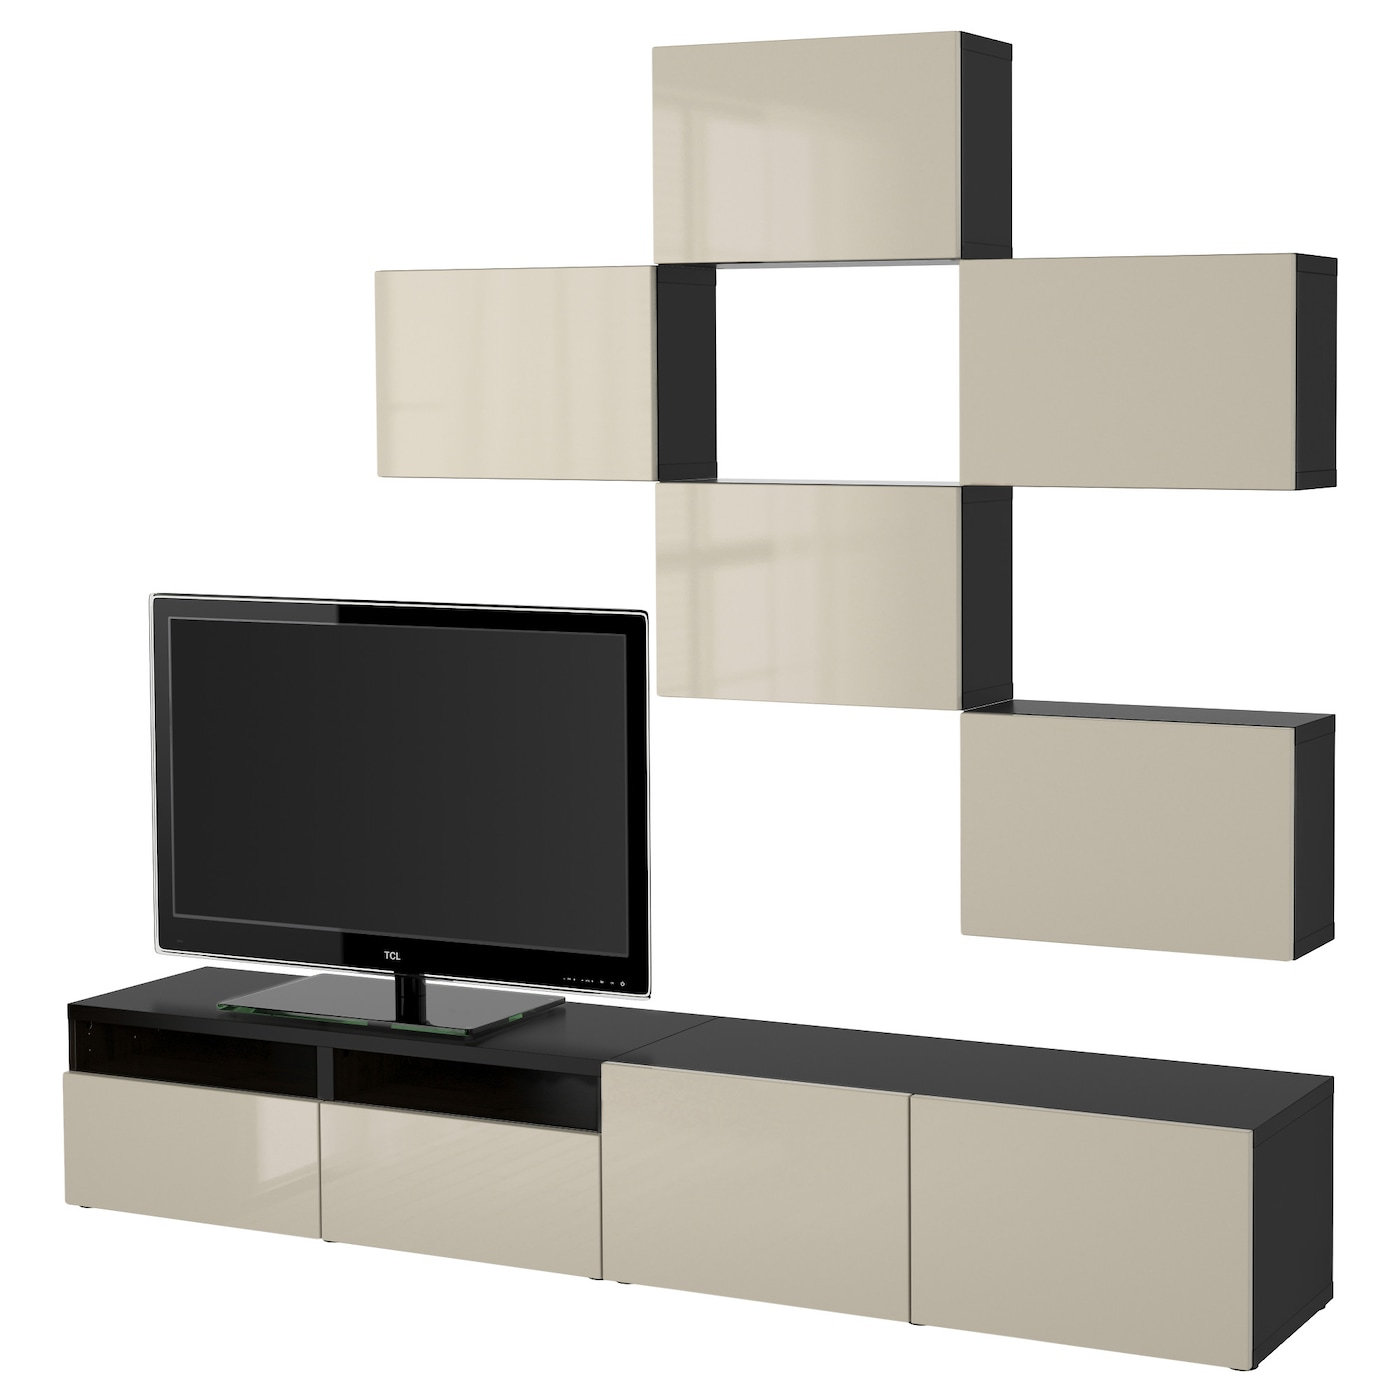 Best Combinaison Meuble Tv Brun Noir Selsviken Brillant Beige  # Meuble Tv Frene